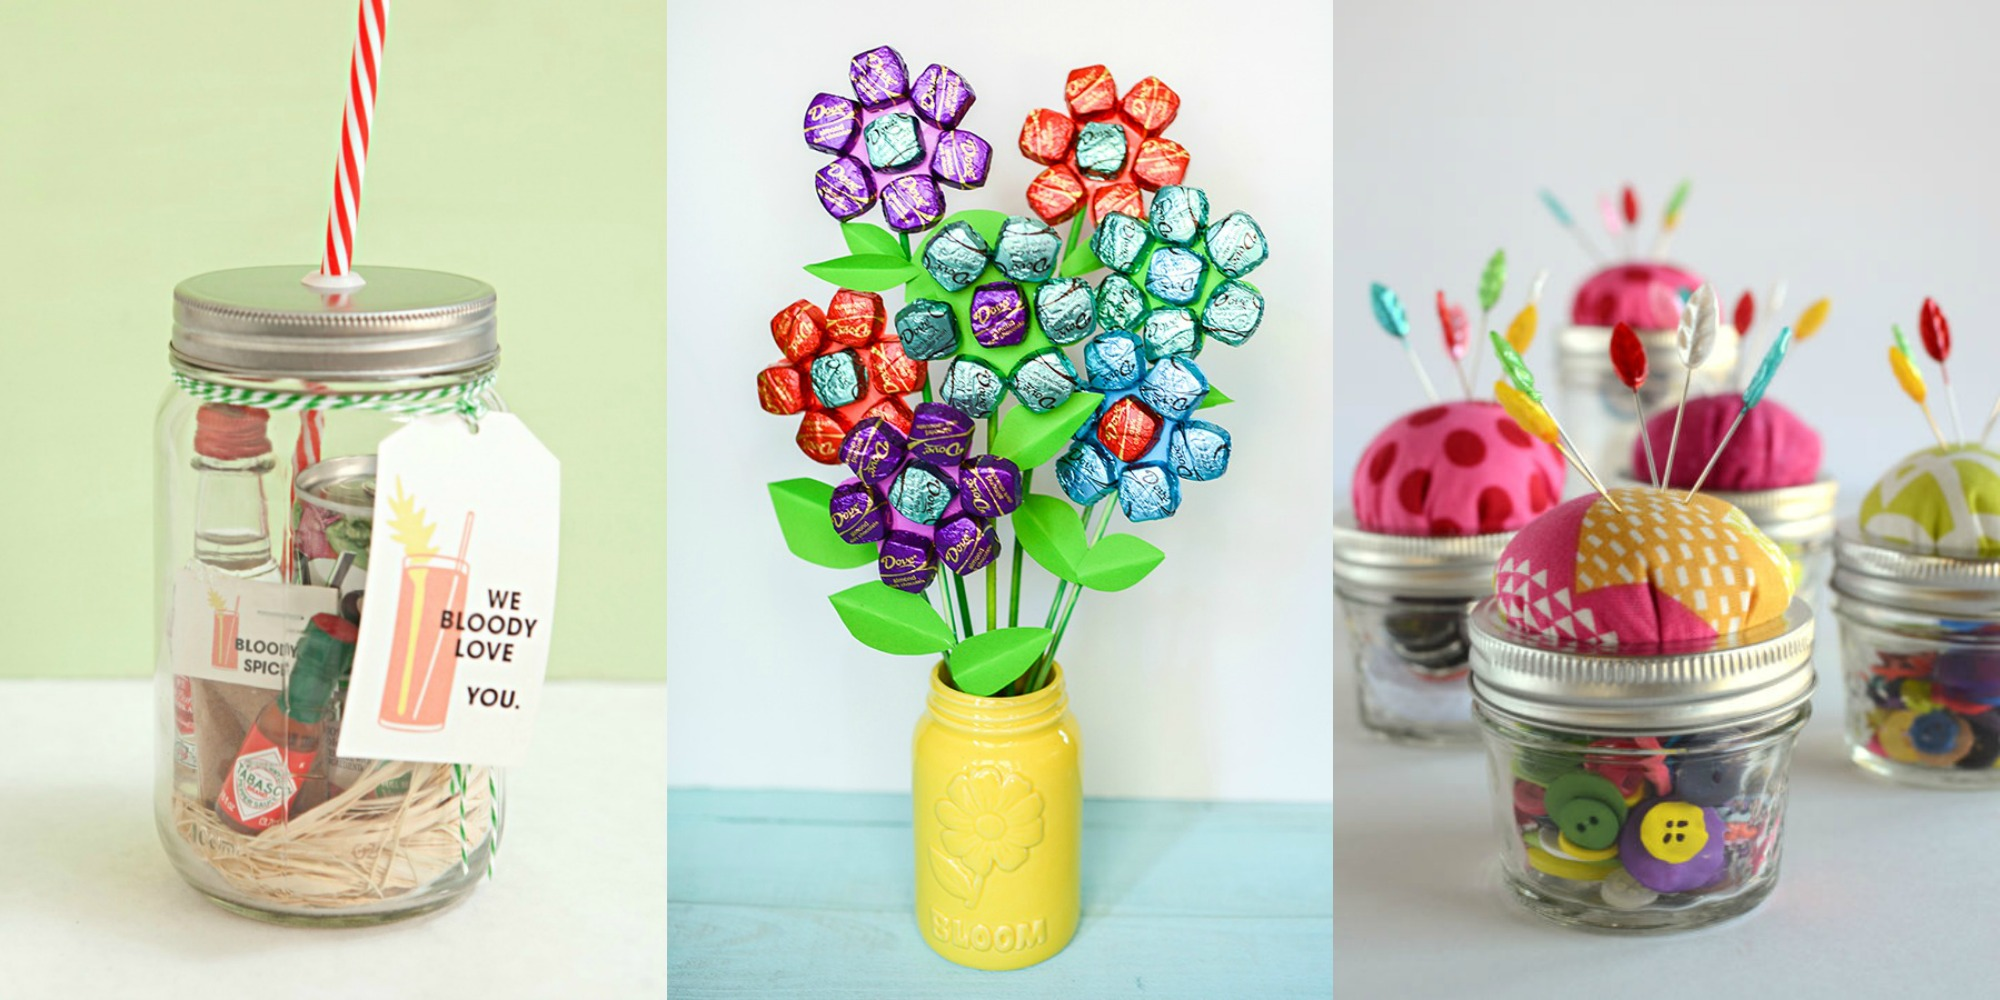 Diy Crafts For Baby Room: 25 Mason Jar Presents For Mother's Day